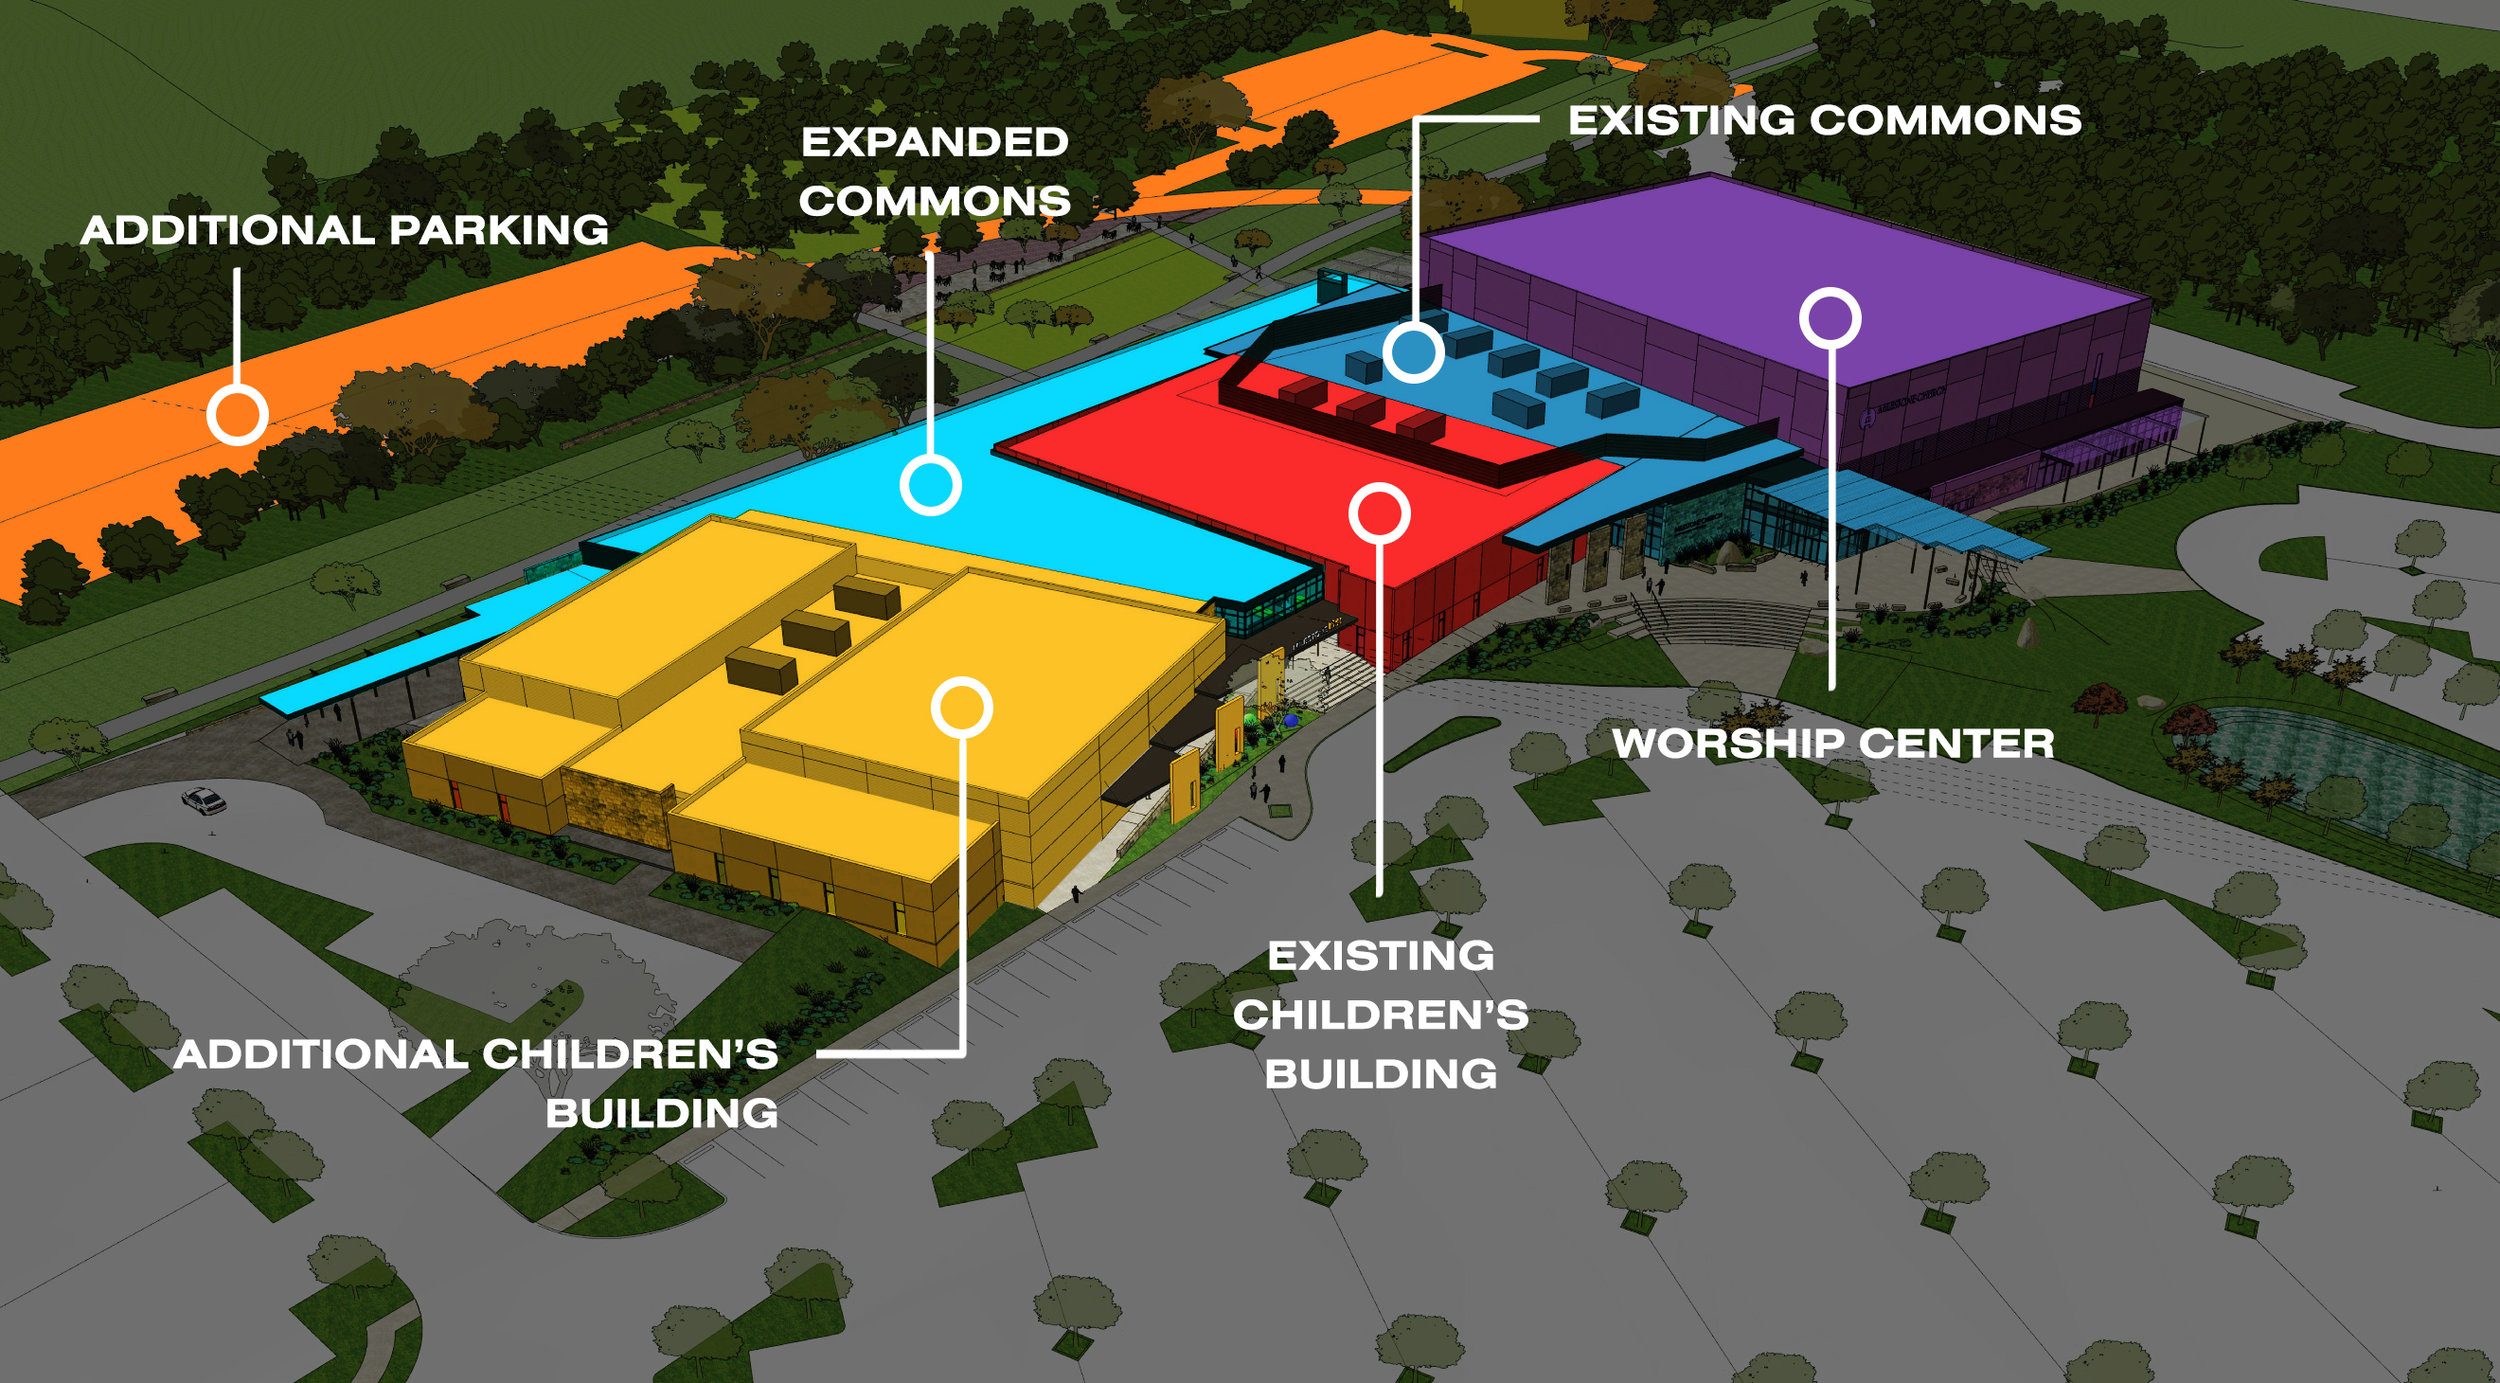 Campus Project Overview